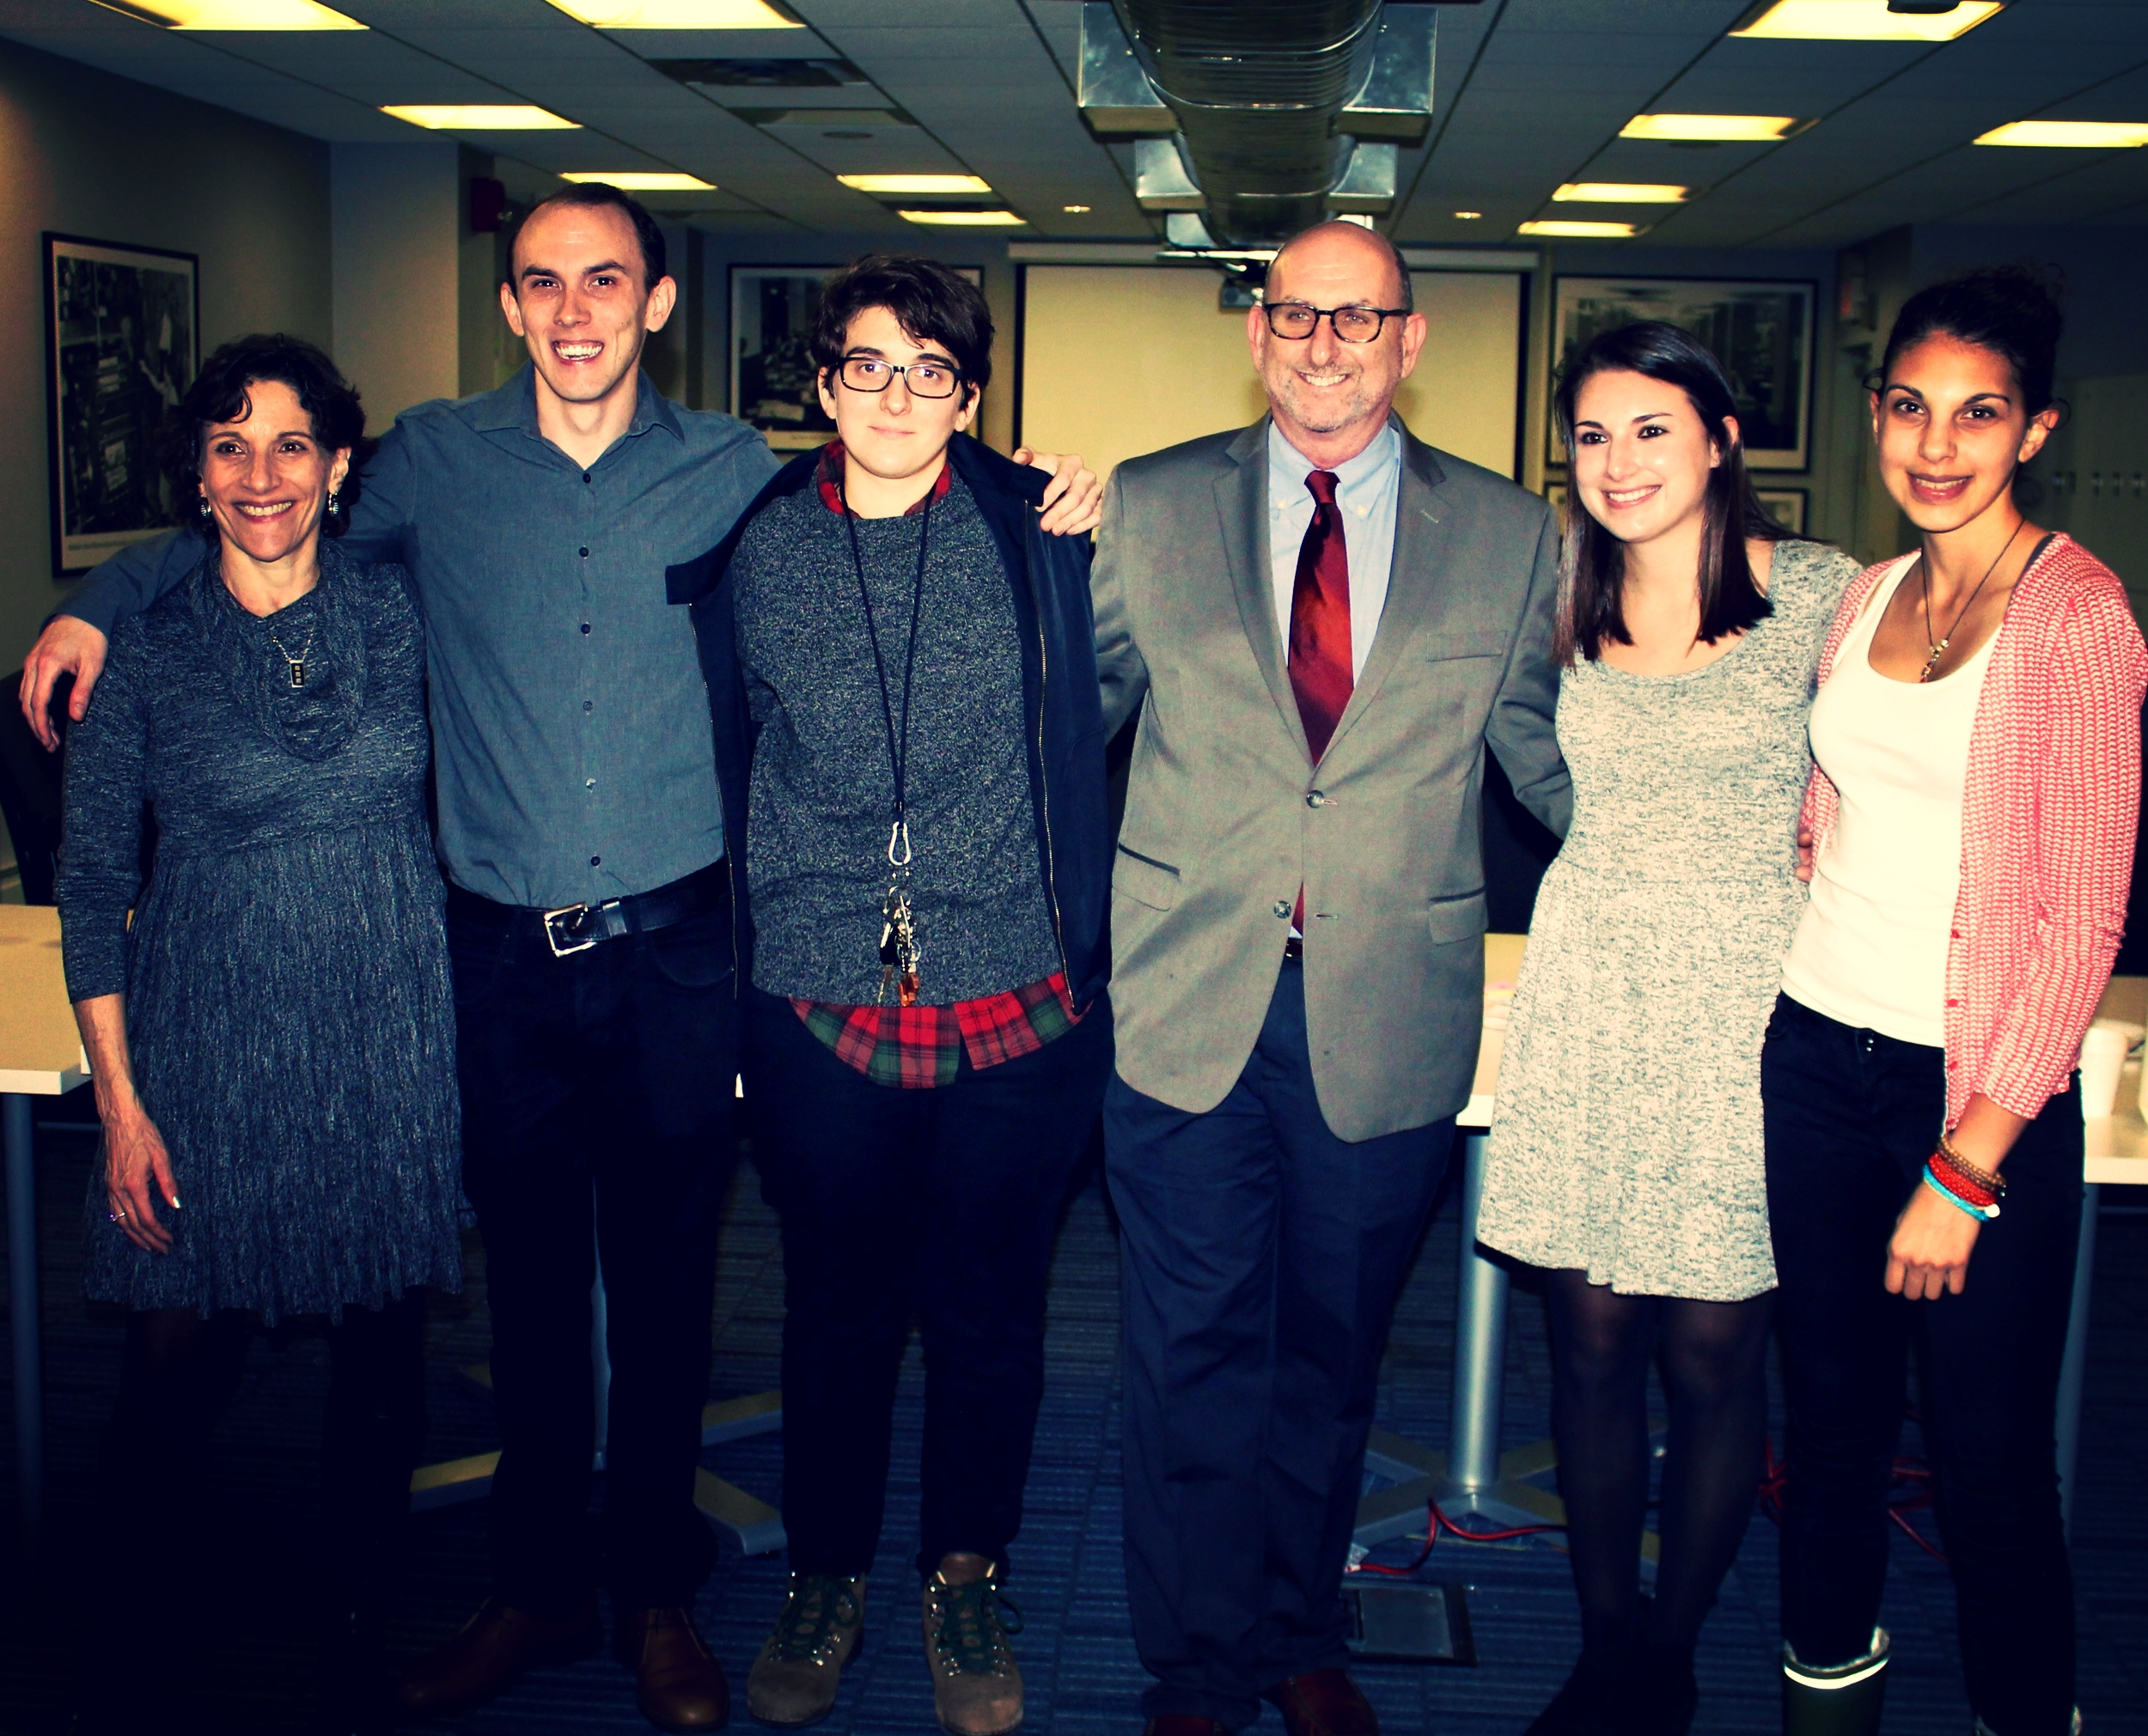 The graduates of the SBU MS Journalism Fall 2015 crew, plus two professors (far left and right-center).